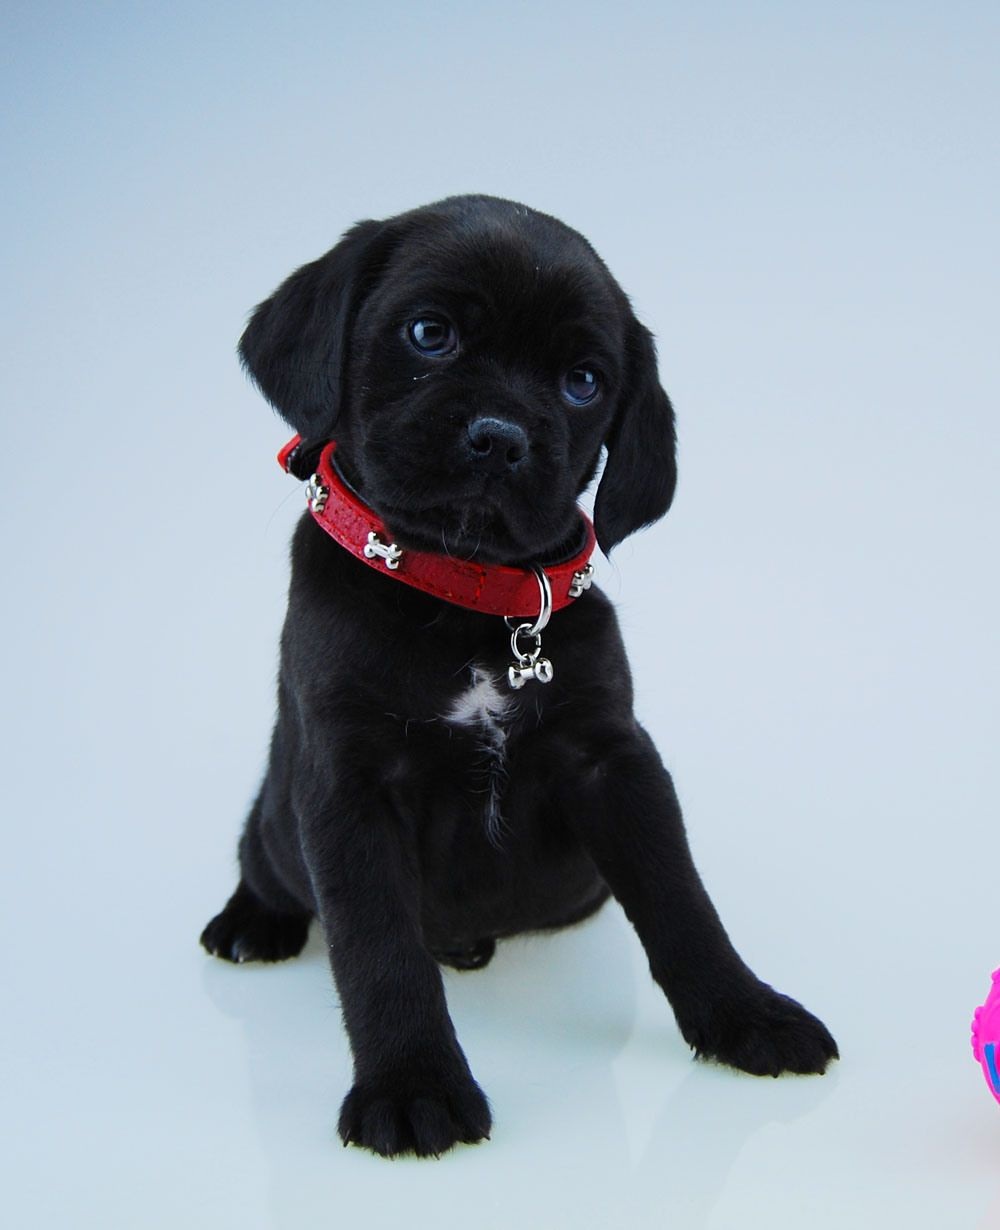 Curious black Puggle puppy | Just for Fun | Pinterest ...